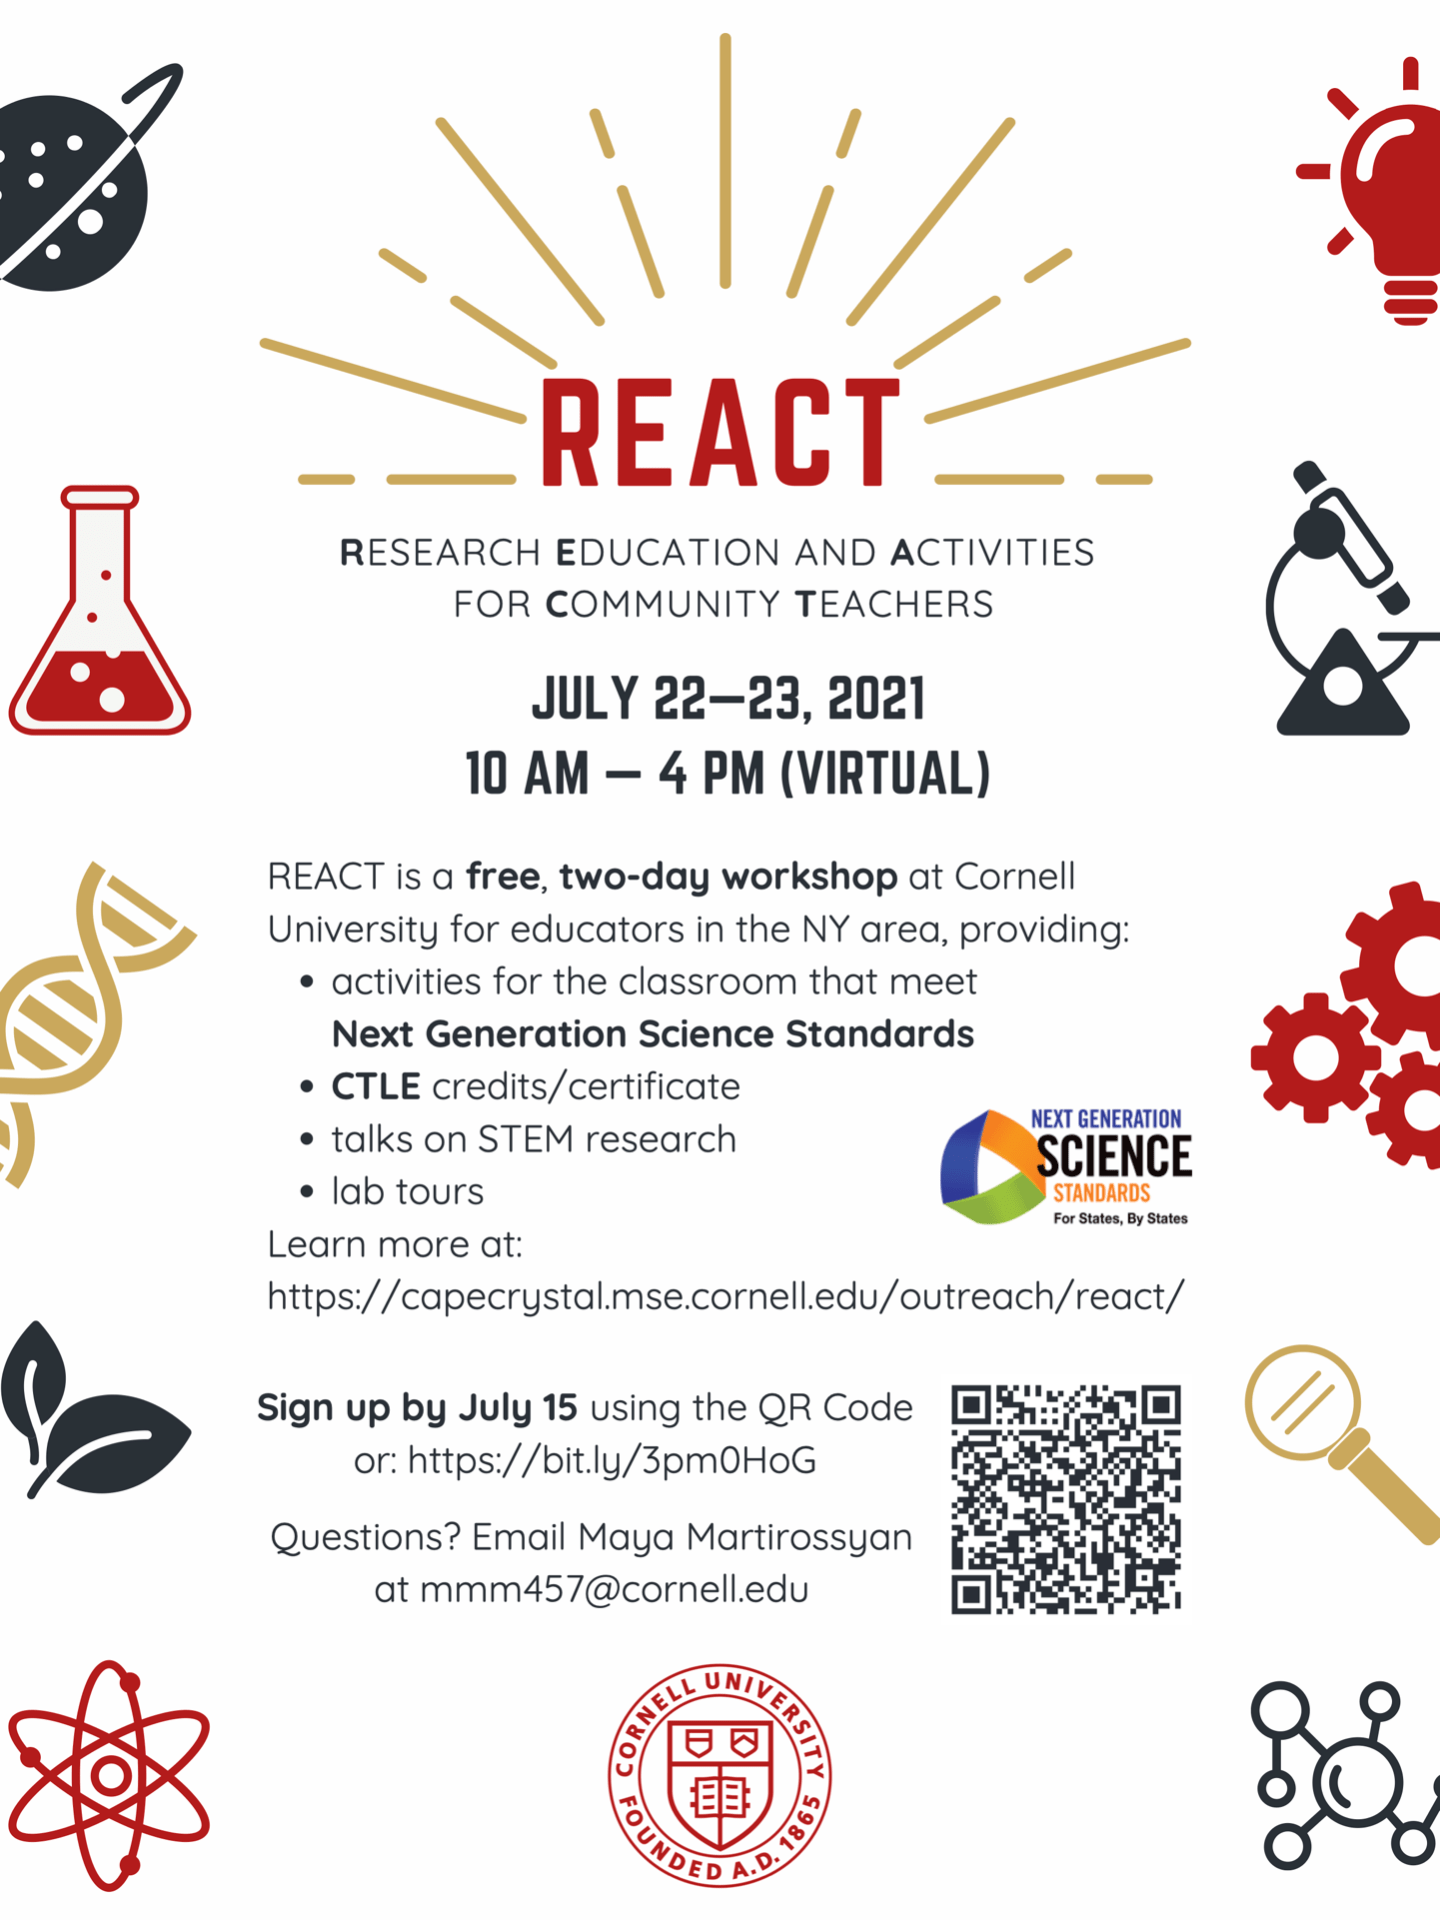 REACT (Research Education and Activities for Community Teachers), July 22–23, 2021, 10 AM – 4 PM (virtual). REACT is a free, two-day workshop at Cornell University for educators in the NY area, providing: activities for the classroom that meet Next Generation Science Standards, CTLE credits / certificate, talks on STEM researc; lab tours. Learn more at https://capecrystal.mse.cornell.edu/outreach/react/ ; Sign up by July 15: https://bit.ly/3pm0HoG